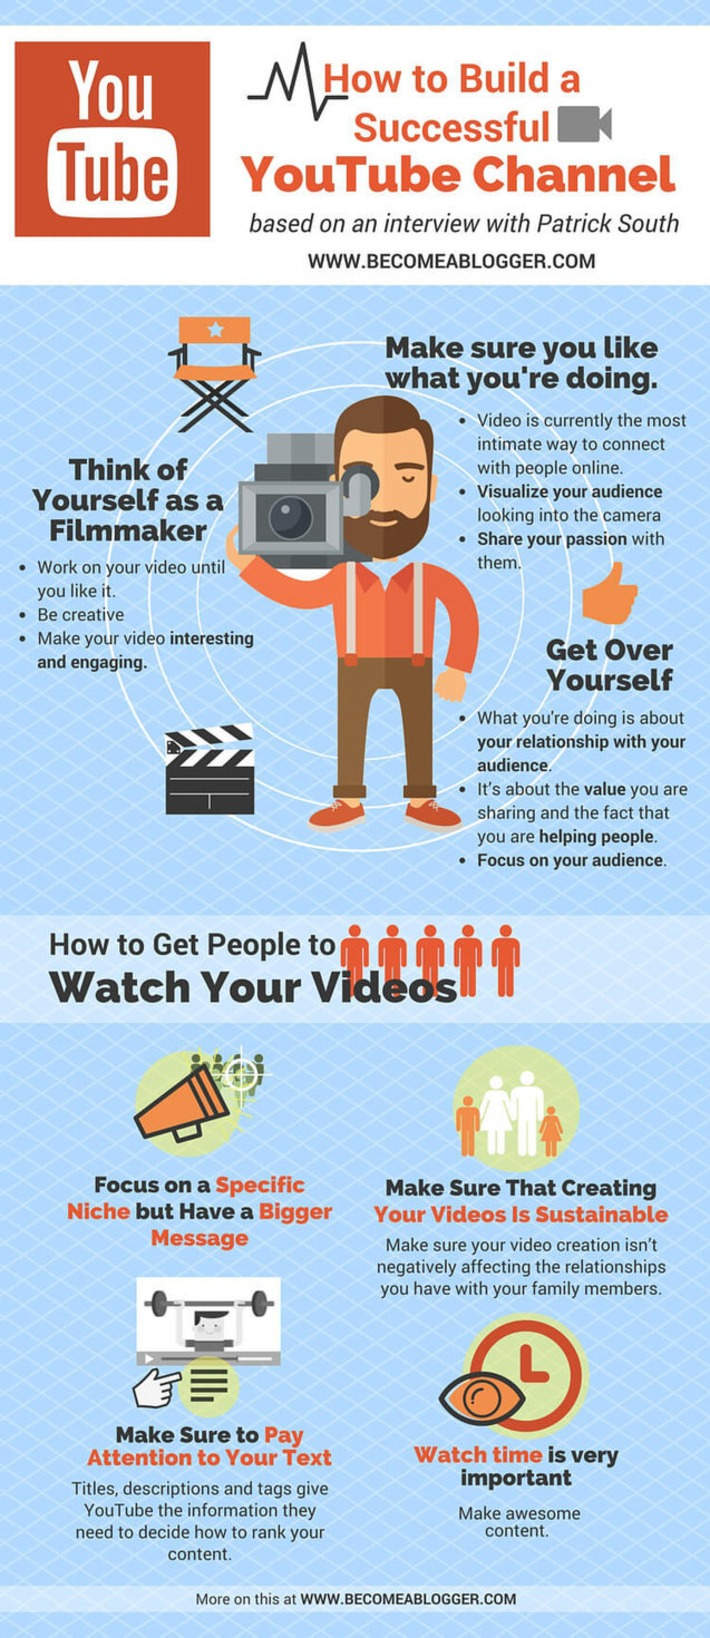 How to Build a Successful YouTube Channel | Médias sociaux : Conseils, Astuces et stratégies | Scoop.it